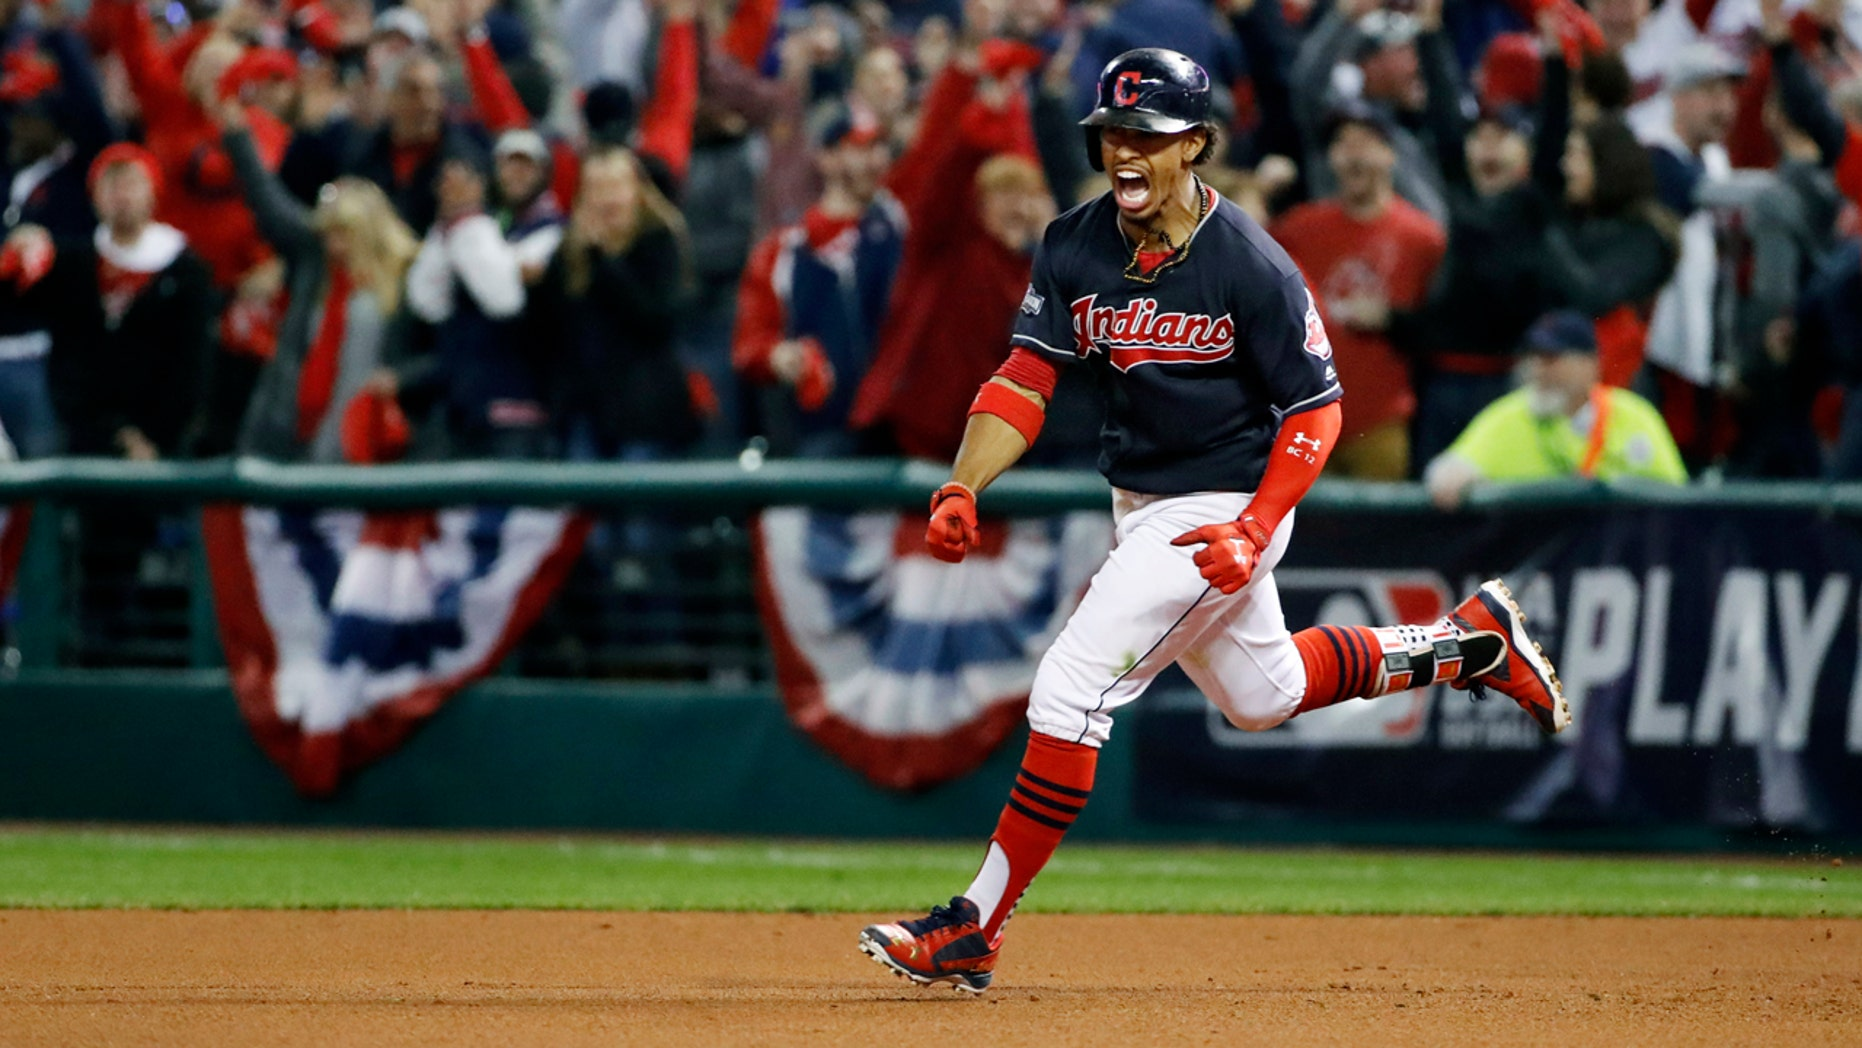 Cleveland Indians' Francisco Lindor rounds the bases on his two-run home run against the Toronto Blue Jays during the sixth inning in Game 1 of baseball's American League Championship Series in Cleveland, Friday, Oct. 14, 2016.(AP Photo/Gene J. Puskar)